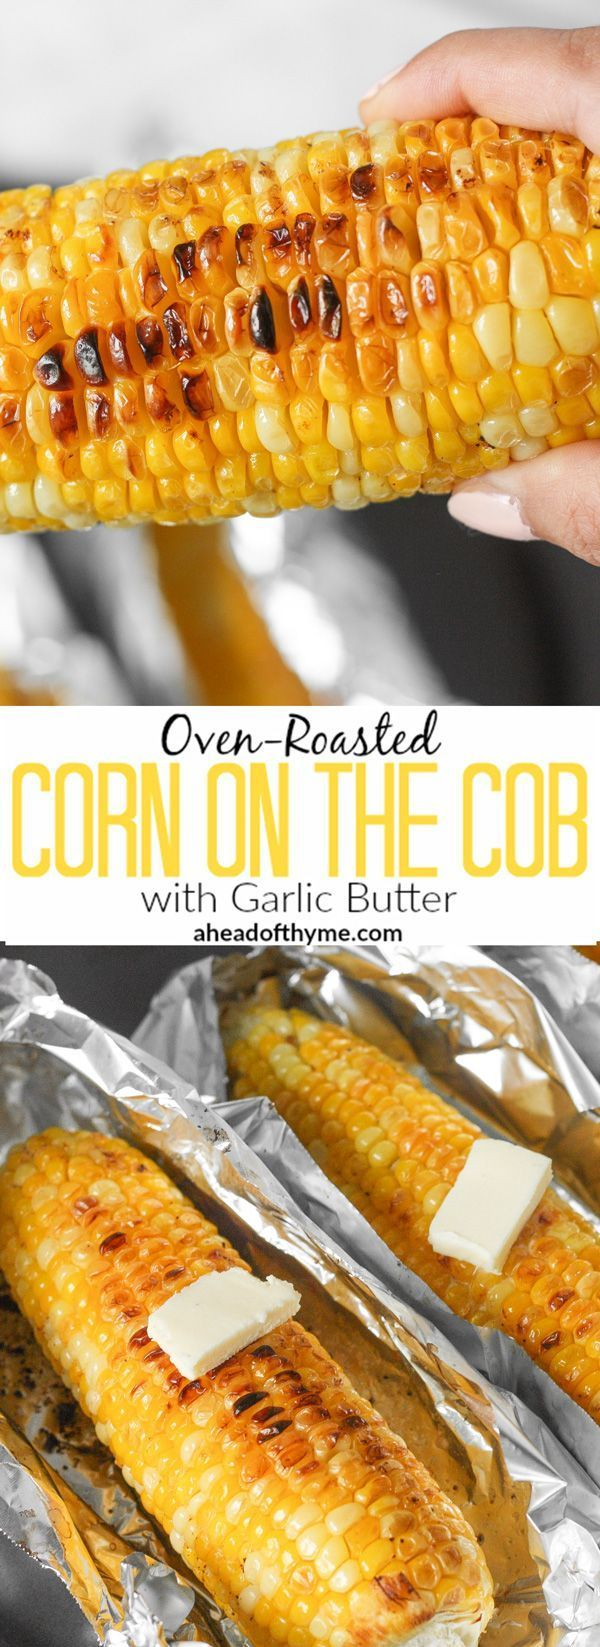 Corn on the Cob with Garlic Butter: When it is inconvenient to grill your corn on the cob, try butt